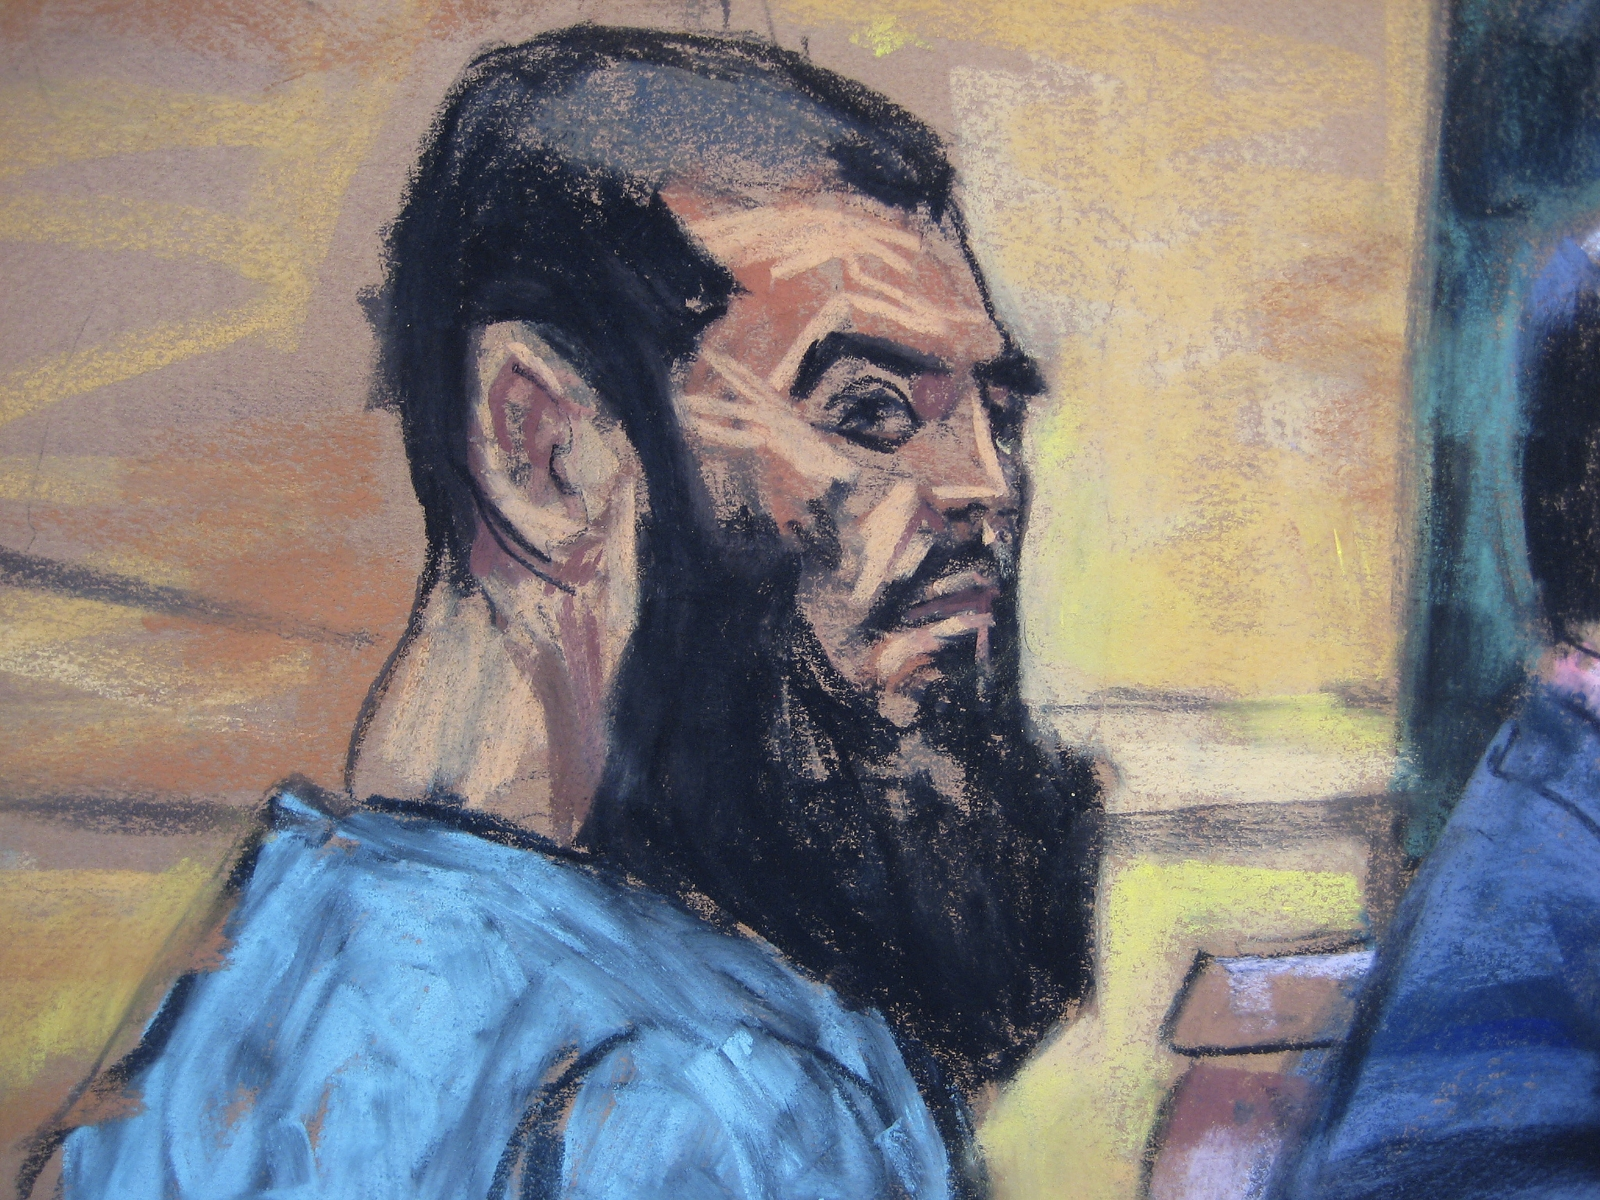 Abid Naseer accused of plotting Manchester terror attack as big as 9/11